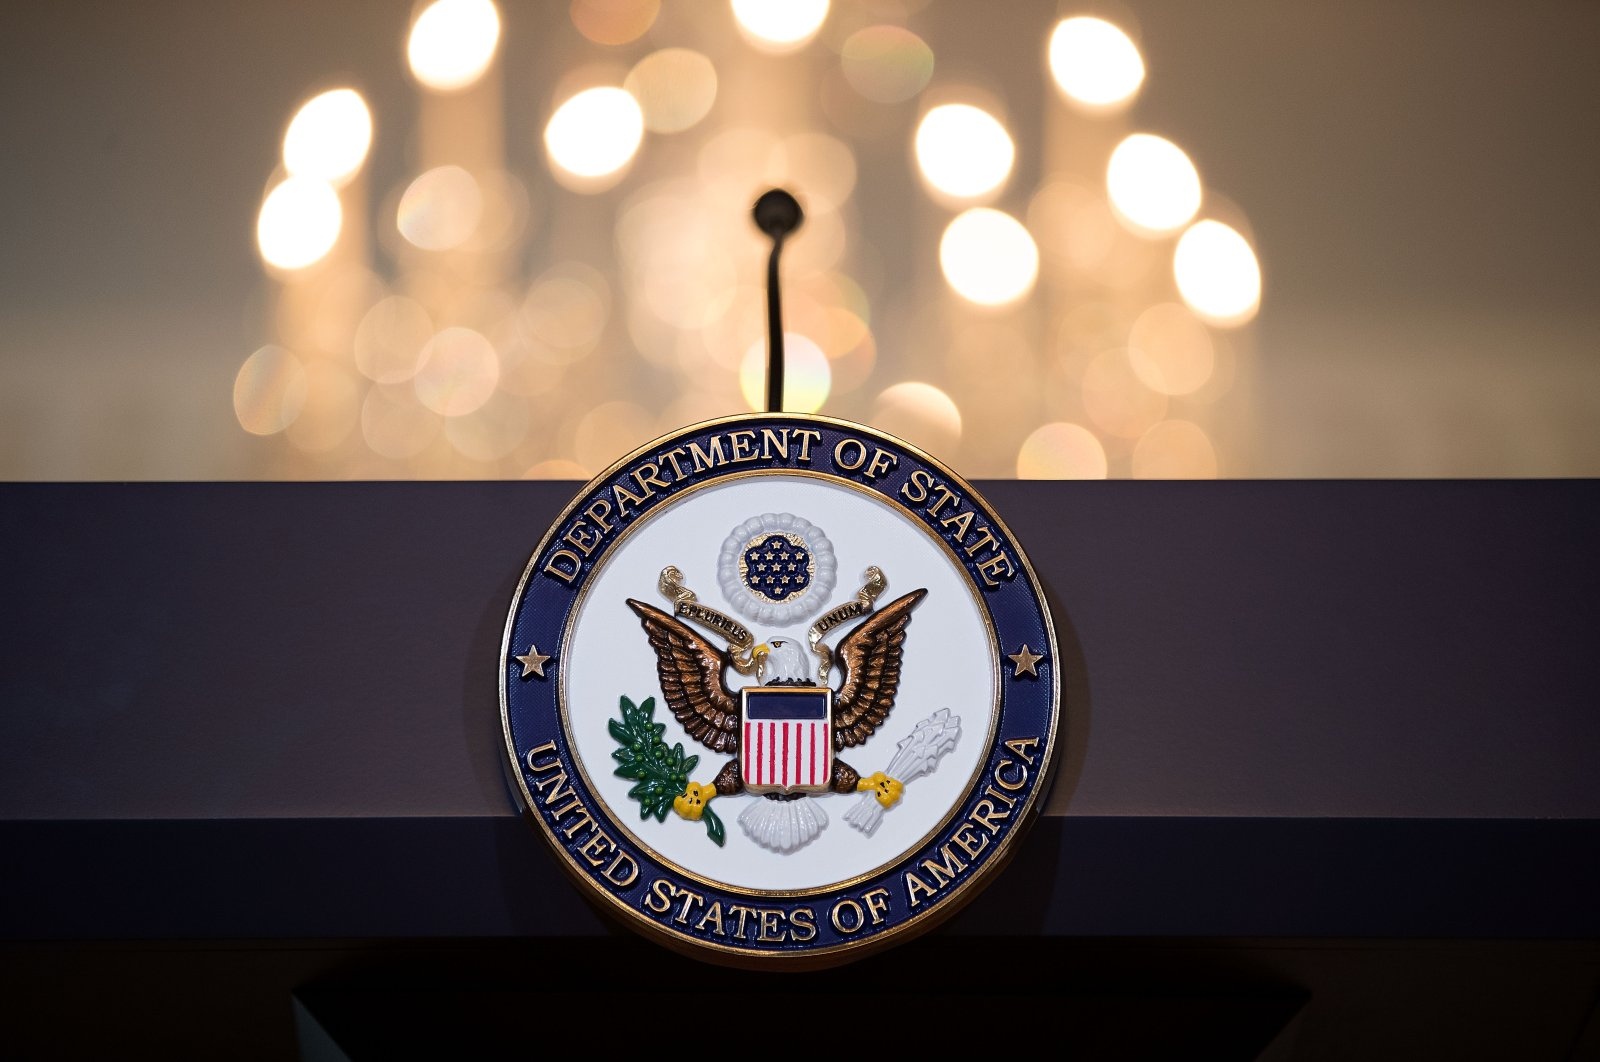 A view of the State Department seal on the podium at the State Department in Washington, D.C., U.S., June 9, 2017. (Getty Images)